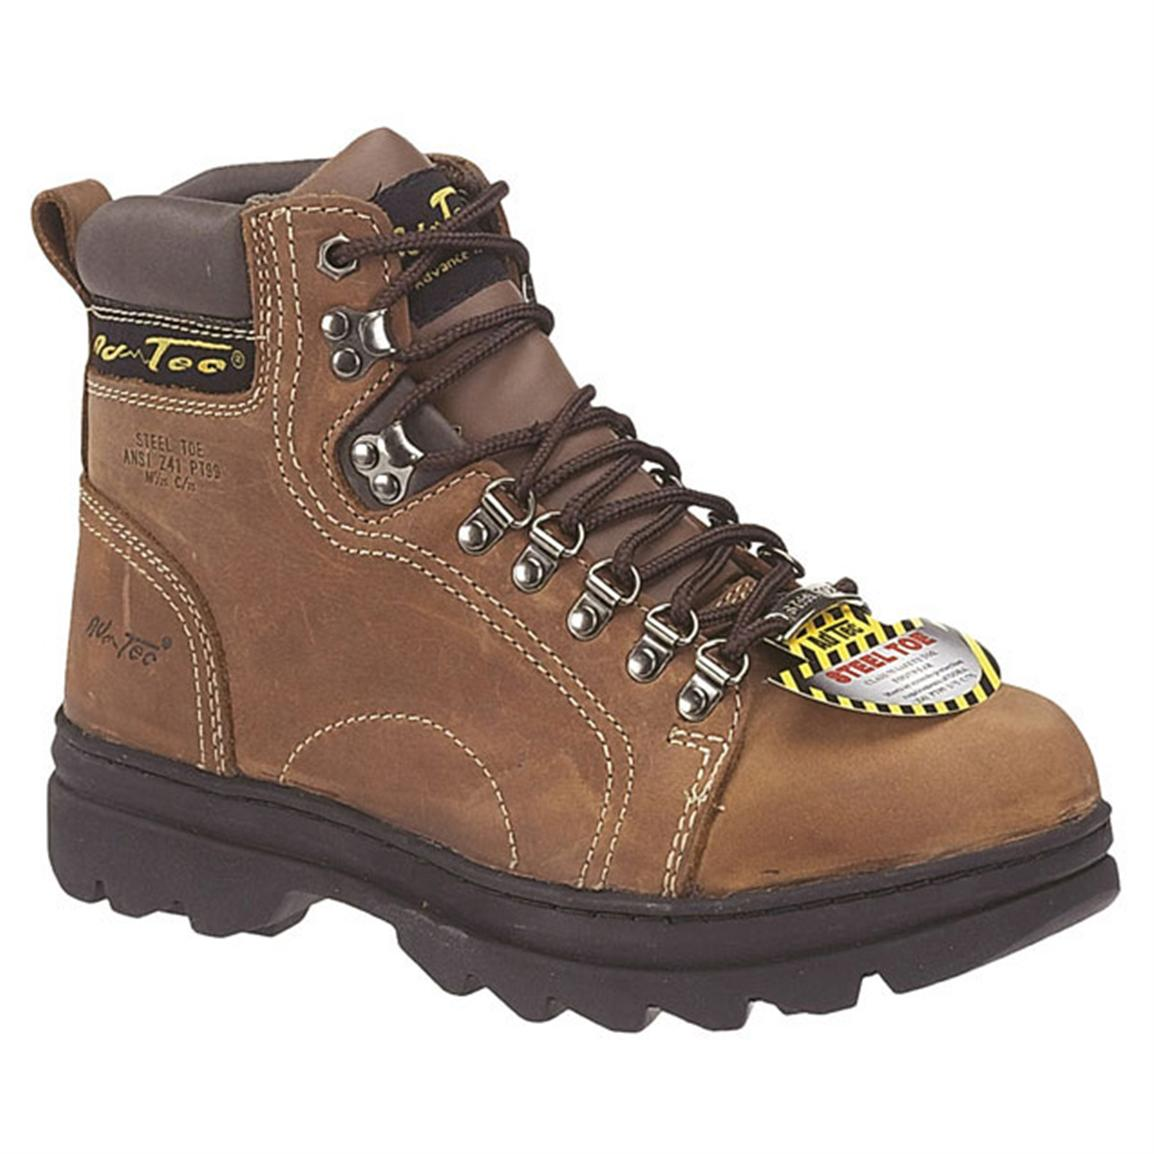 Men's 6 inch Ad Tec® Steel Toe Hikers, Brown